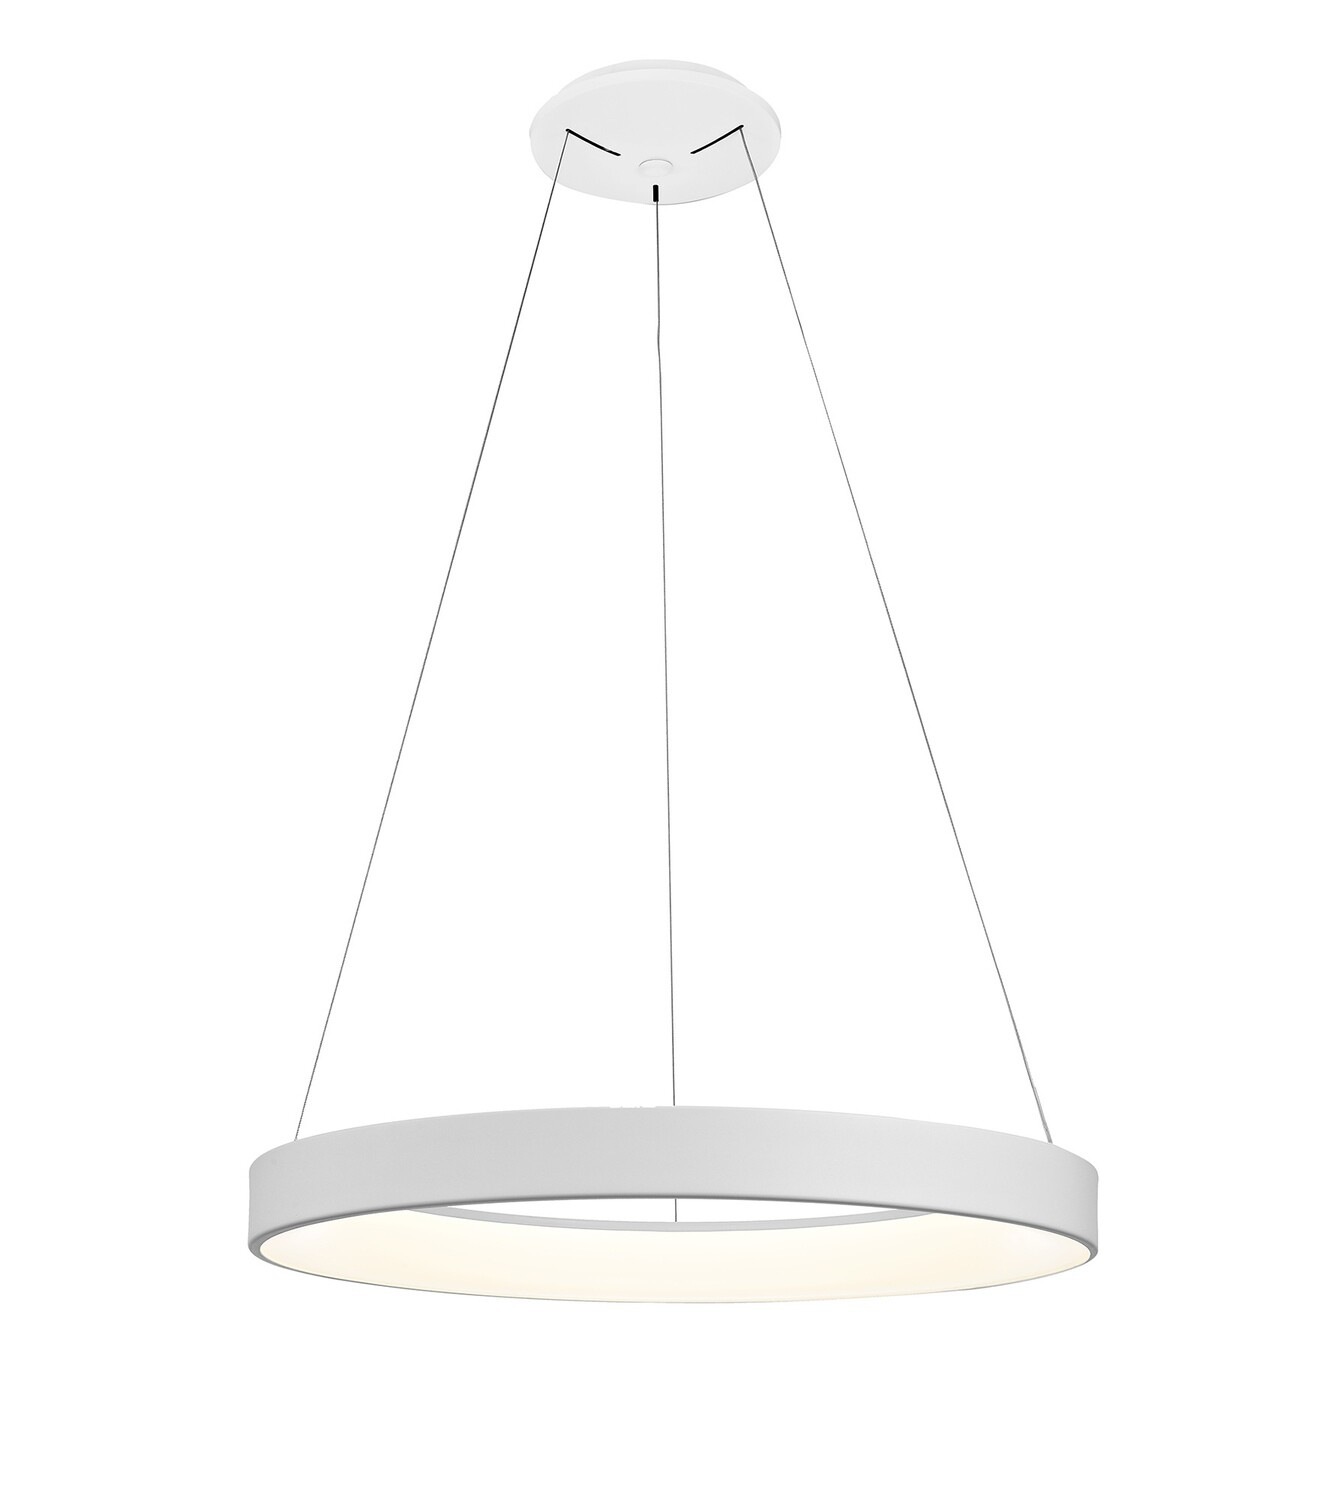 Niseko Dimmable RIng Pendant 65cm Round 50W LED 3000K, 3500lm, White